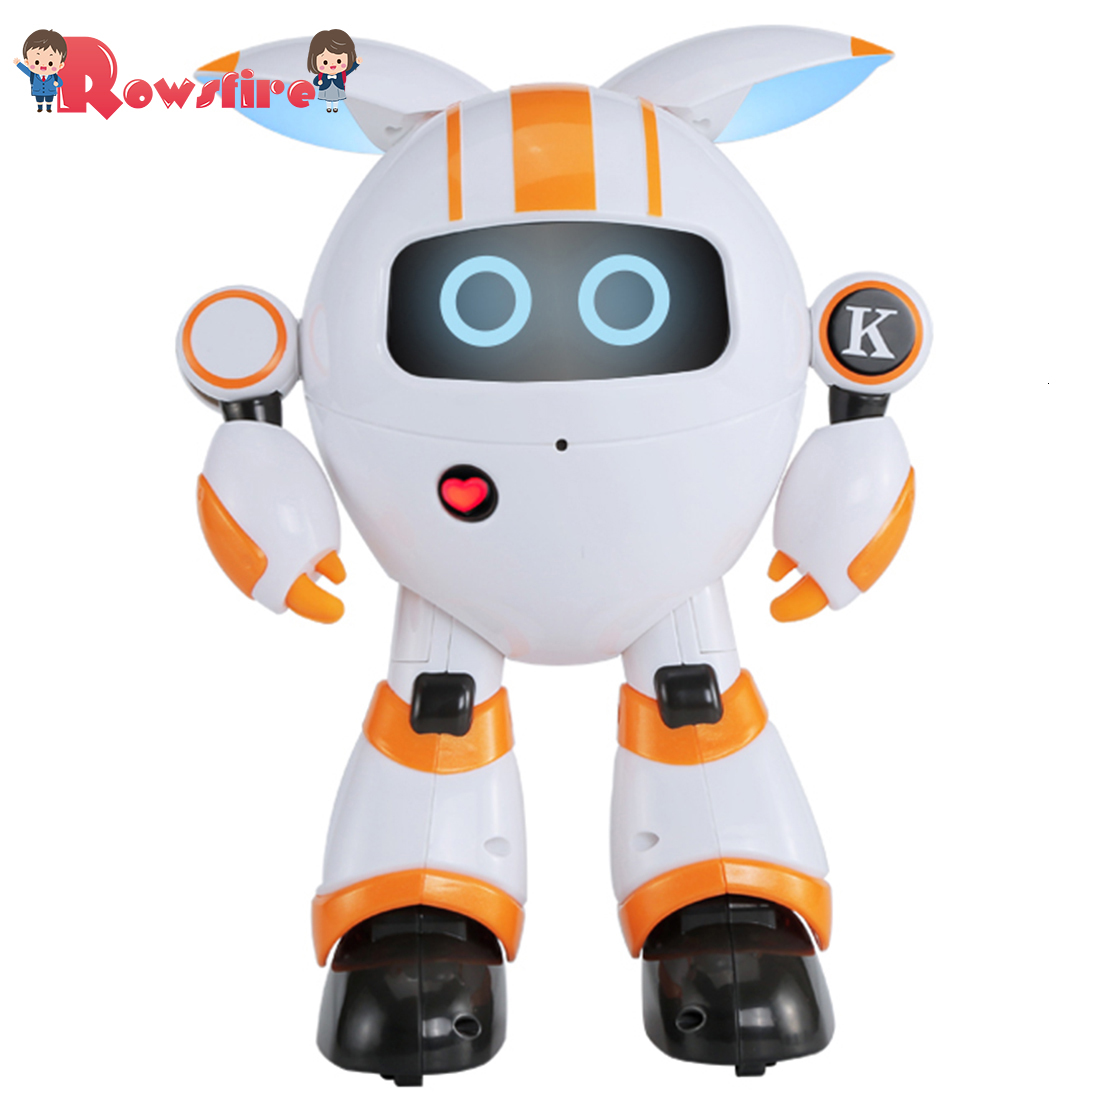 Rowsfire Smart Walking Robot RC Electronic Dancing Singing Robot Toy For Children - Orange/Blue